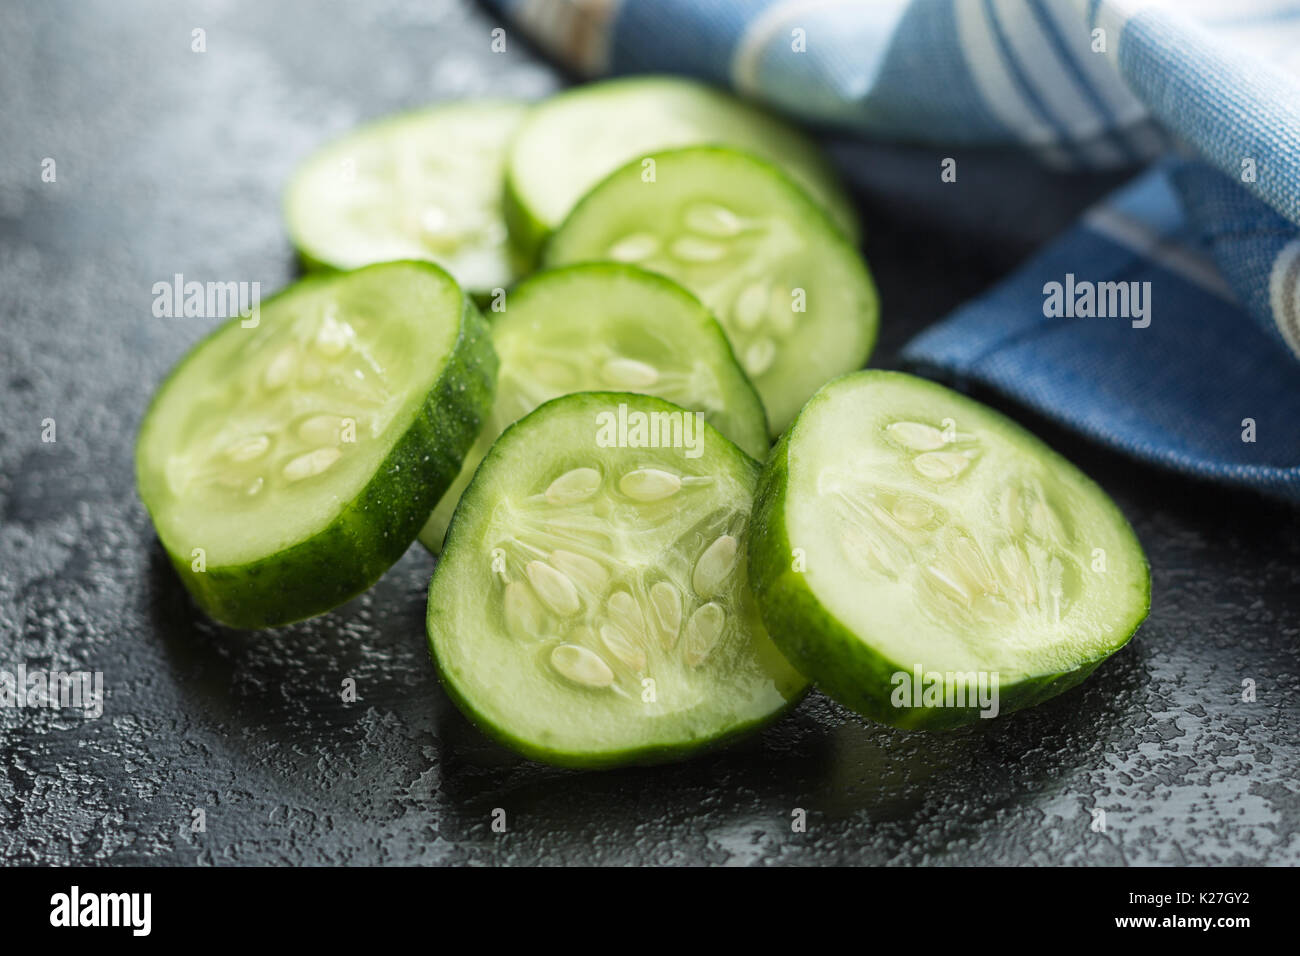 Sliced green cucumbers. Cucumber slices on black table. - Stock Image